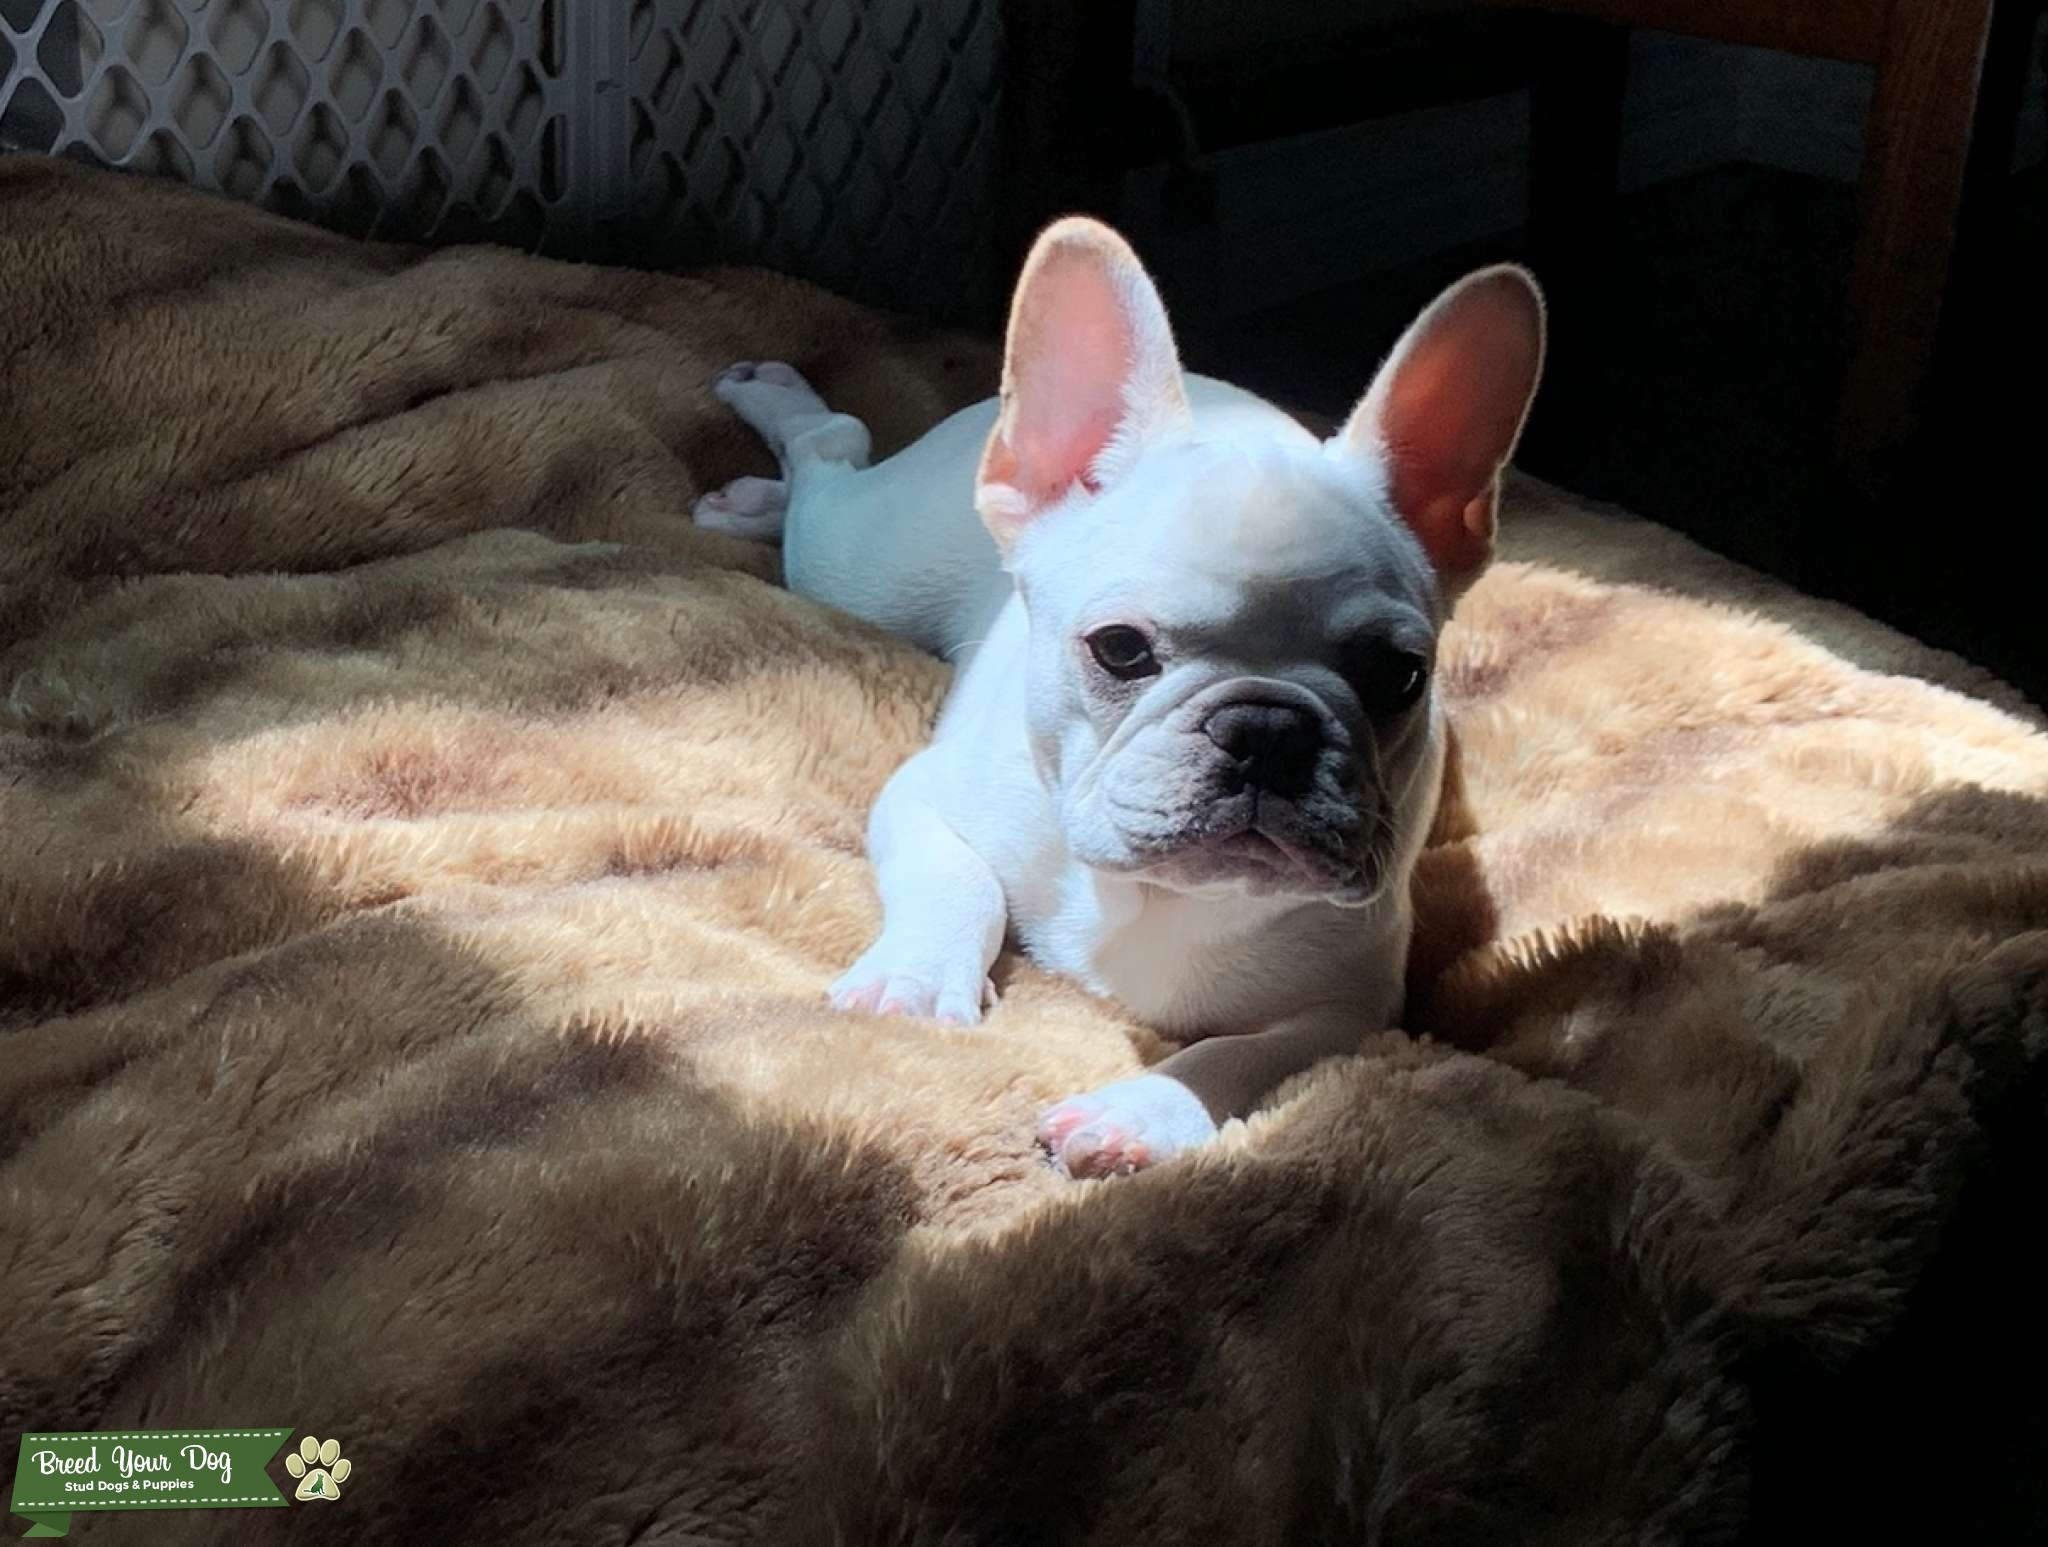 All-white French Bulldog  Listing Image Big